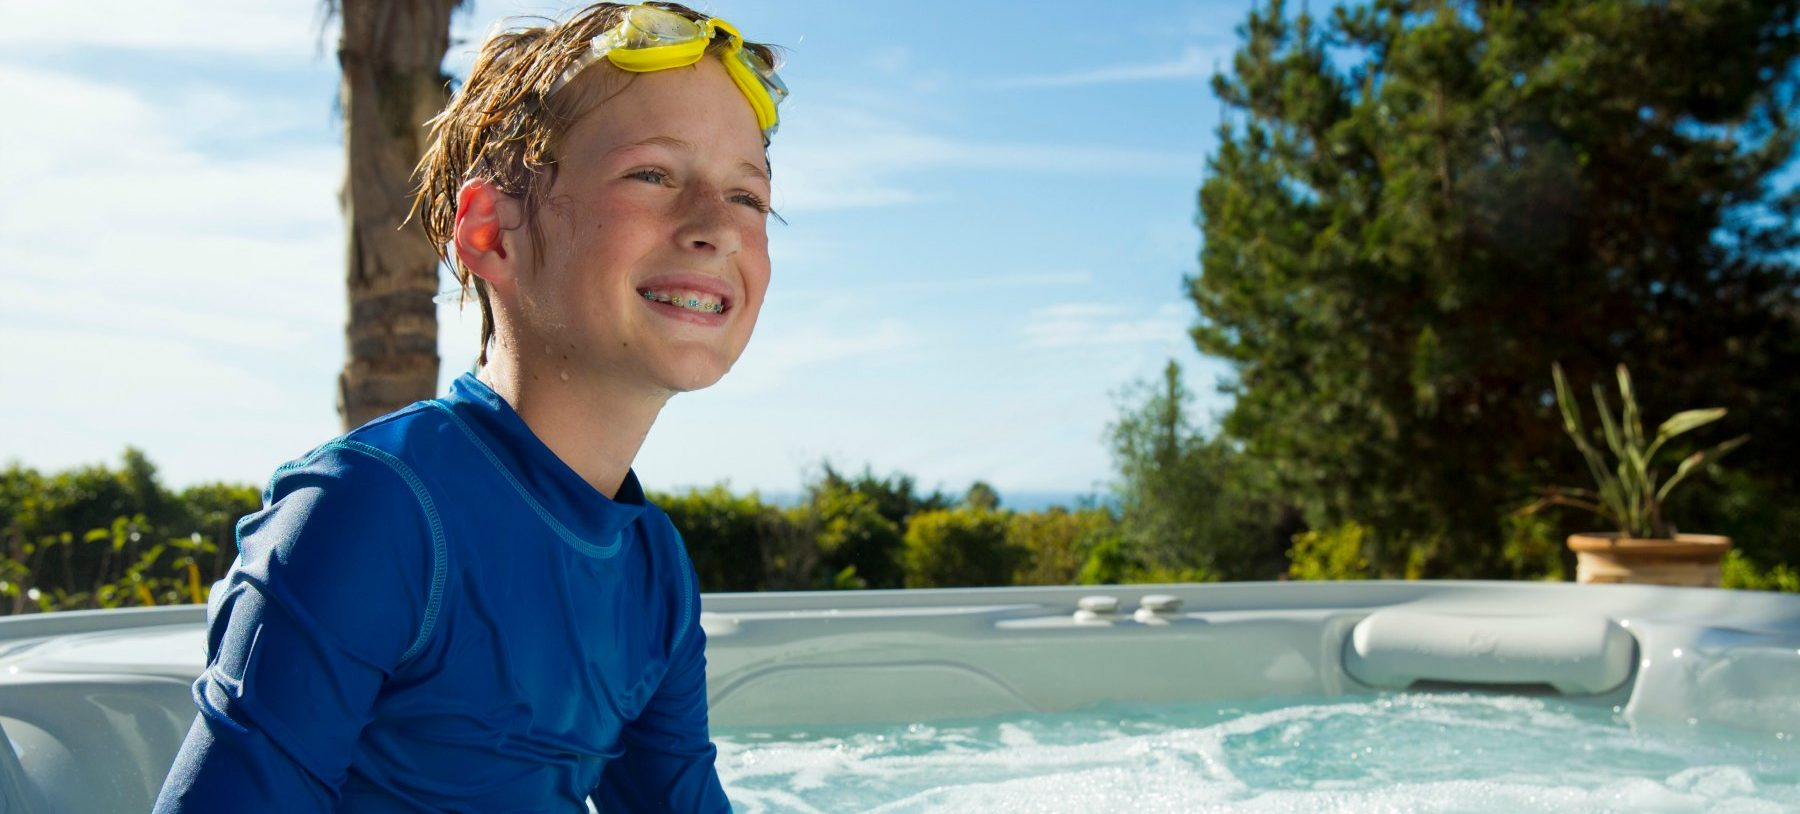 Turn Your Hot Tub Maintenance into a Kid's Science Lesson